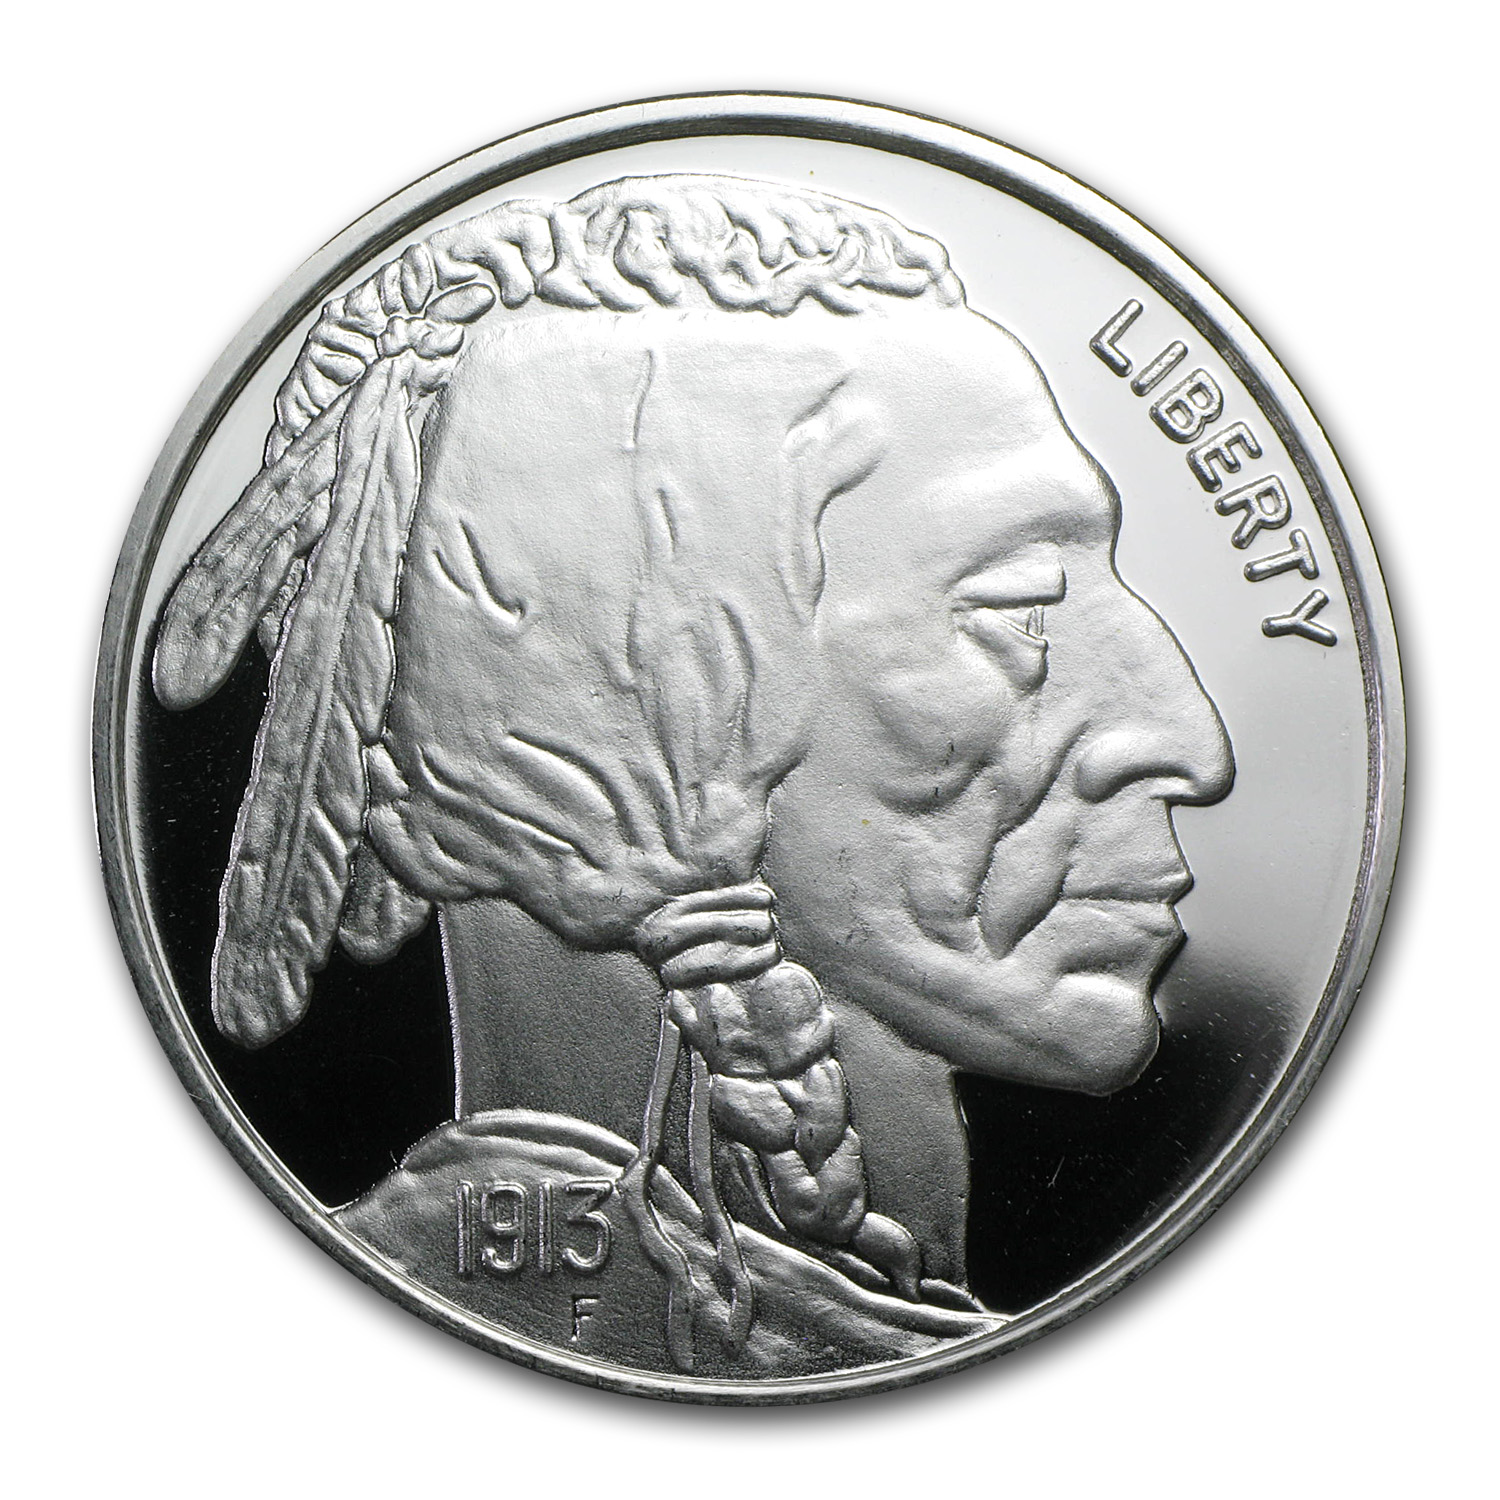 2 oz Silver Round - Buffalo Nickel (Replica)